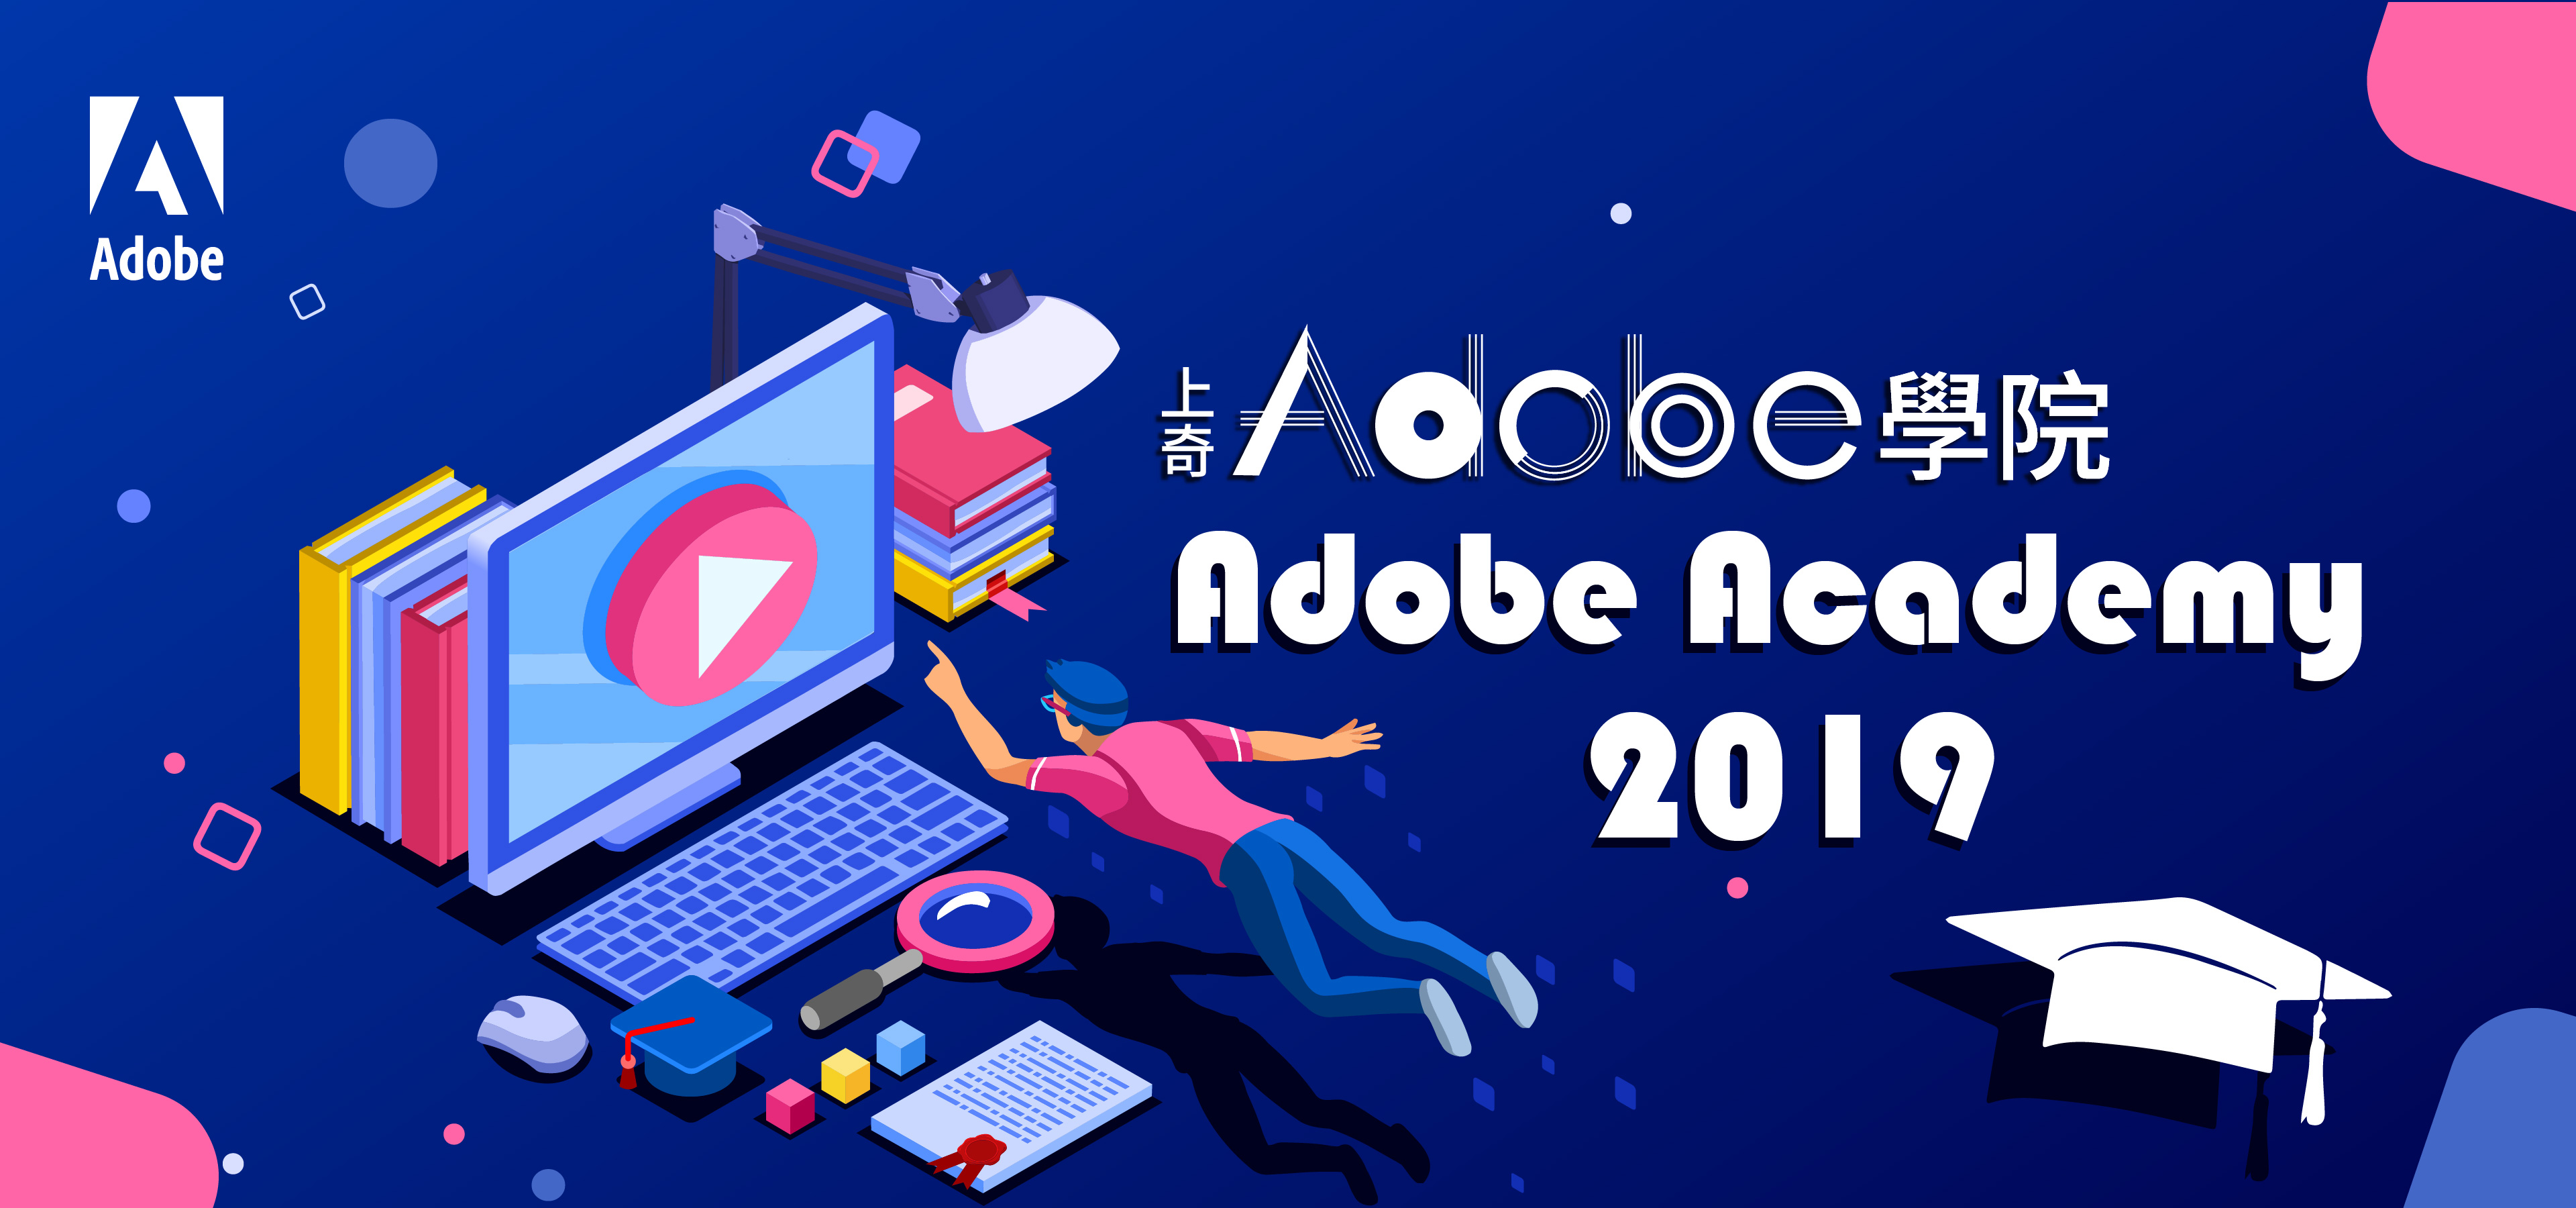 Adobe Academy Launch!!